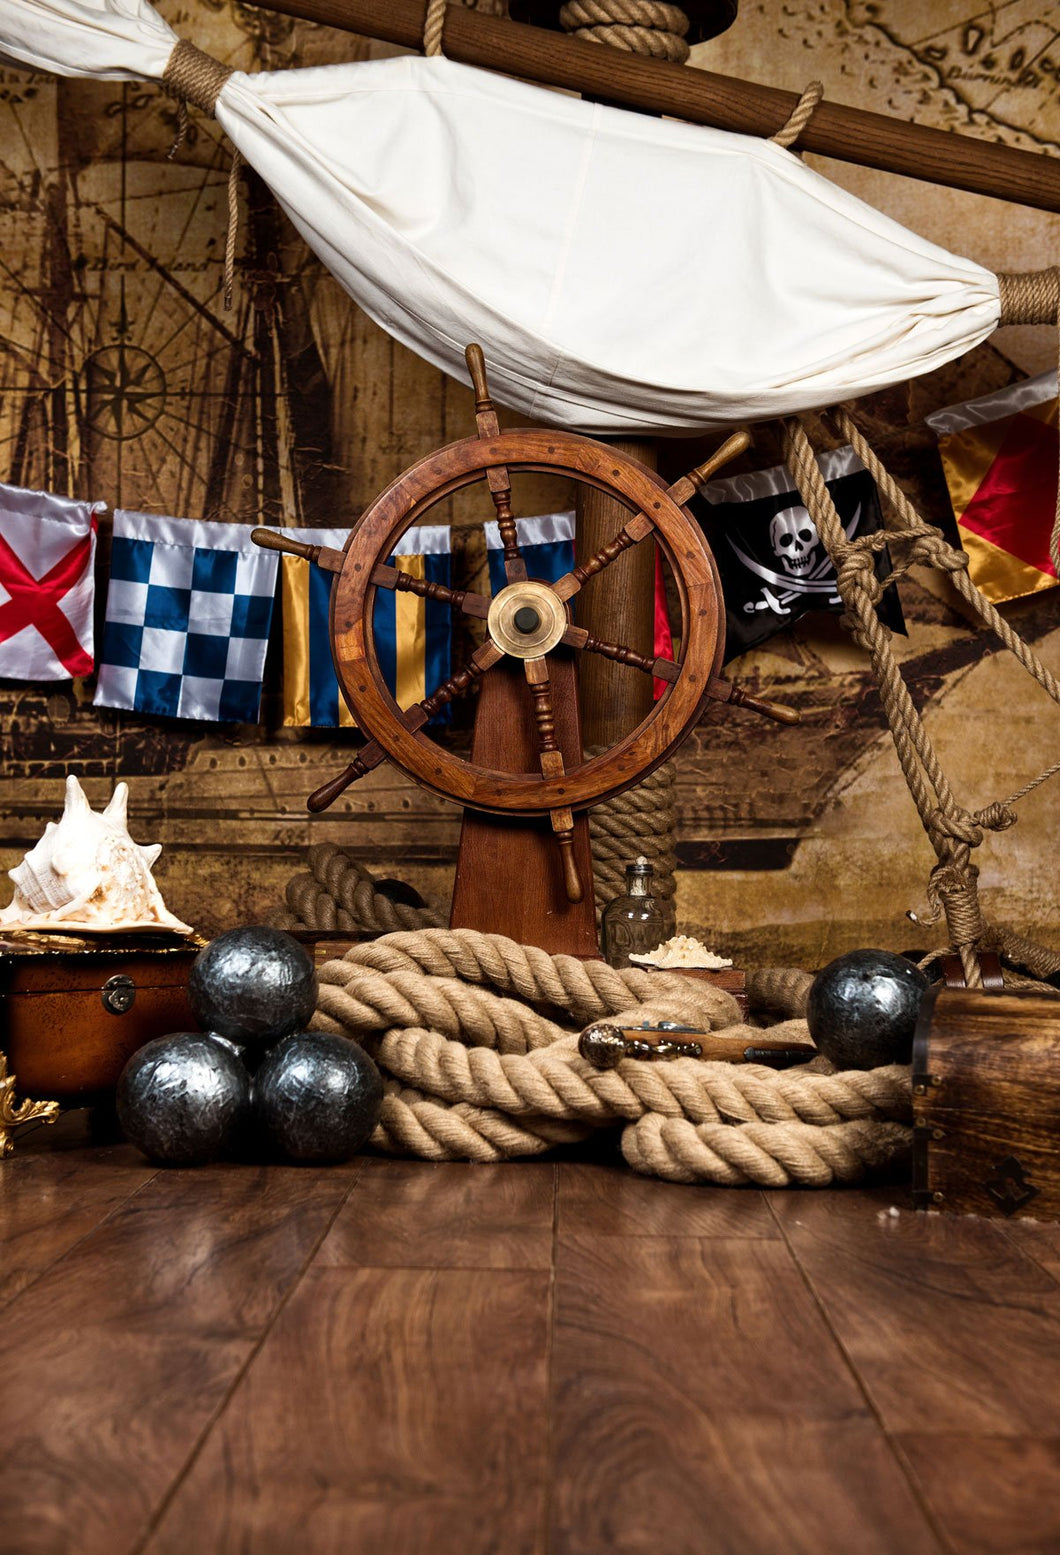 Kate Pirates Ship Photo Backdrop Deck With Steering Wheel Flag - Kate backdrops UK